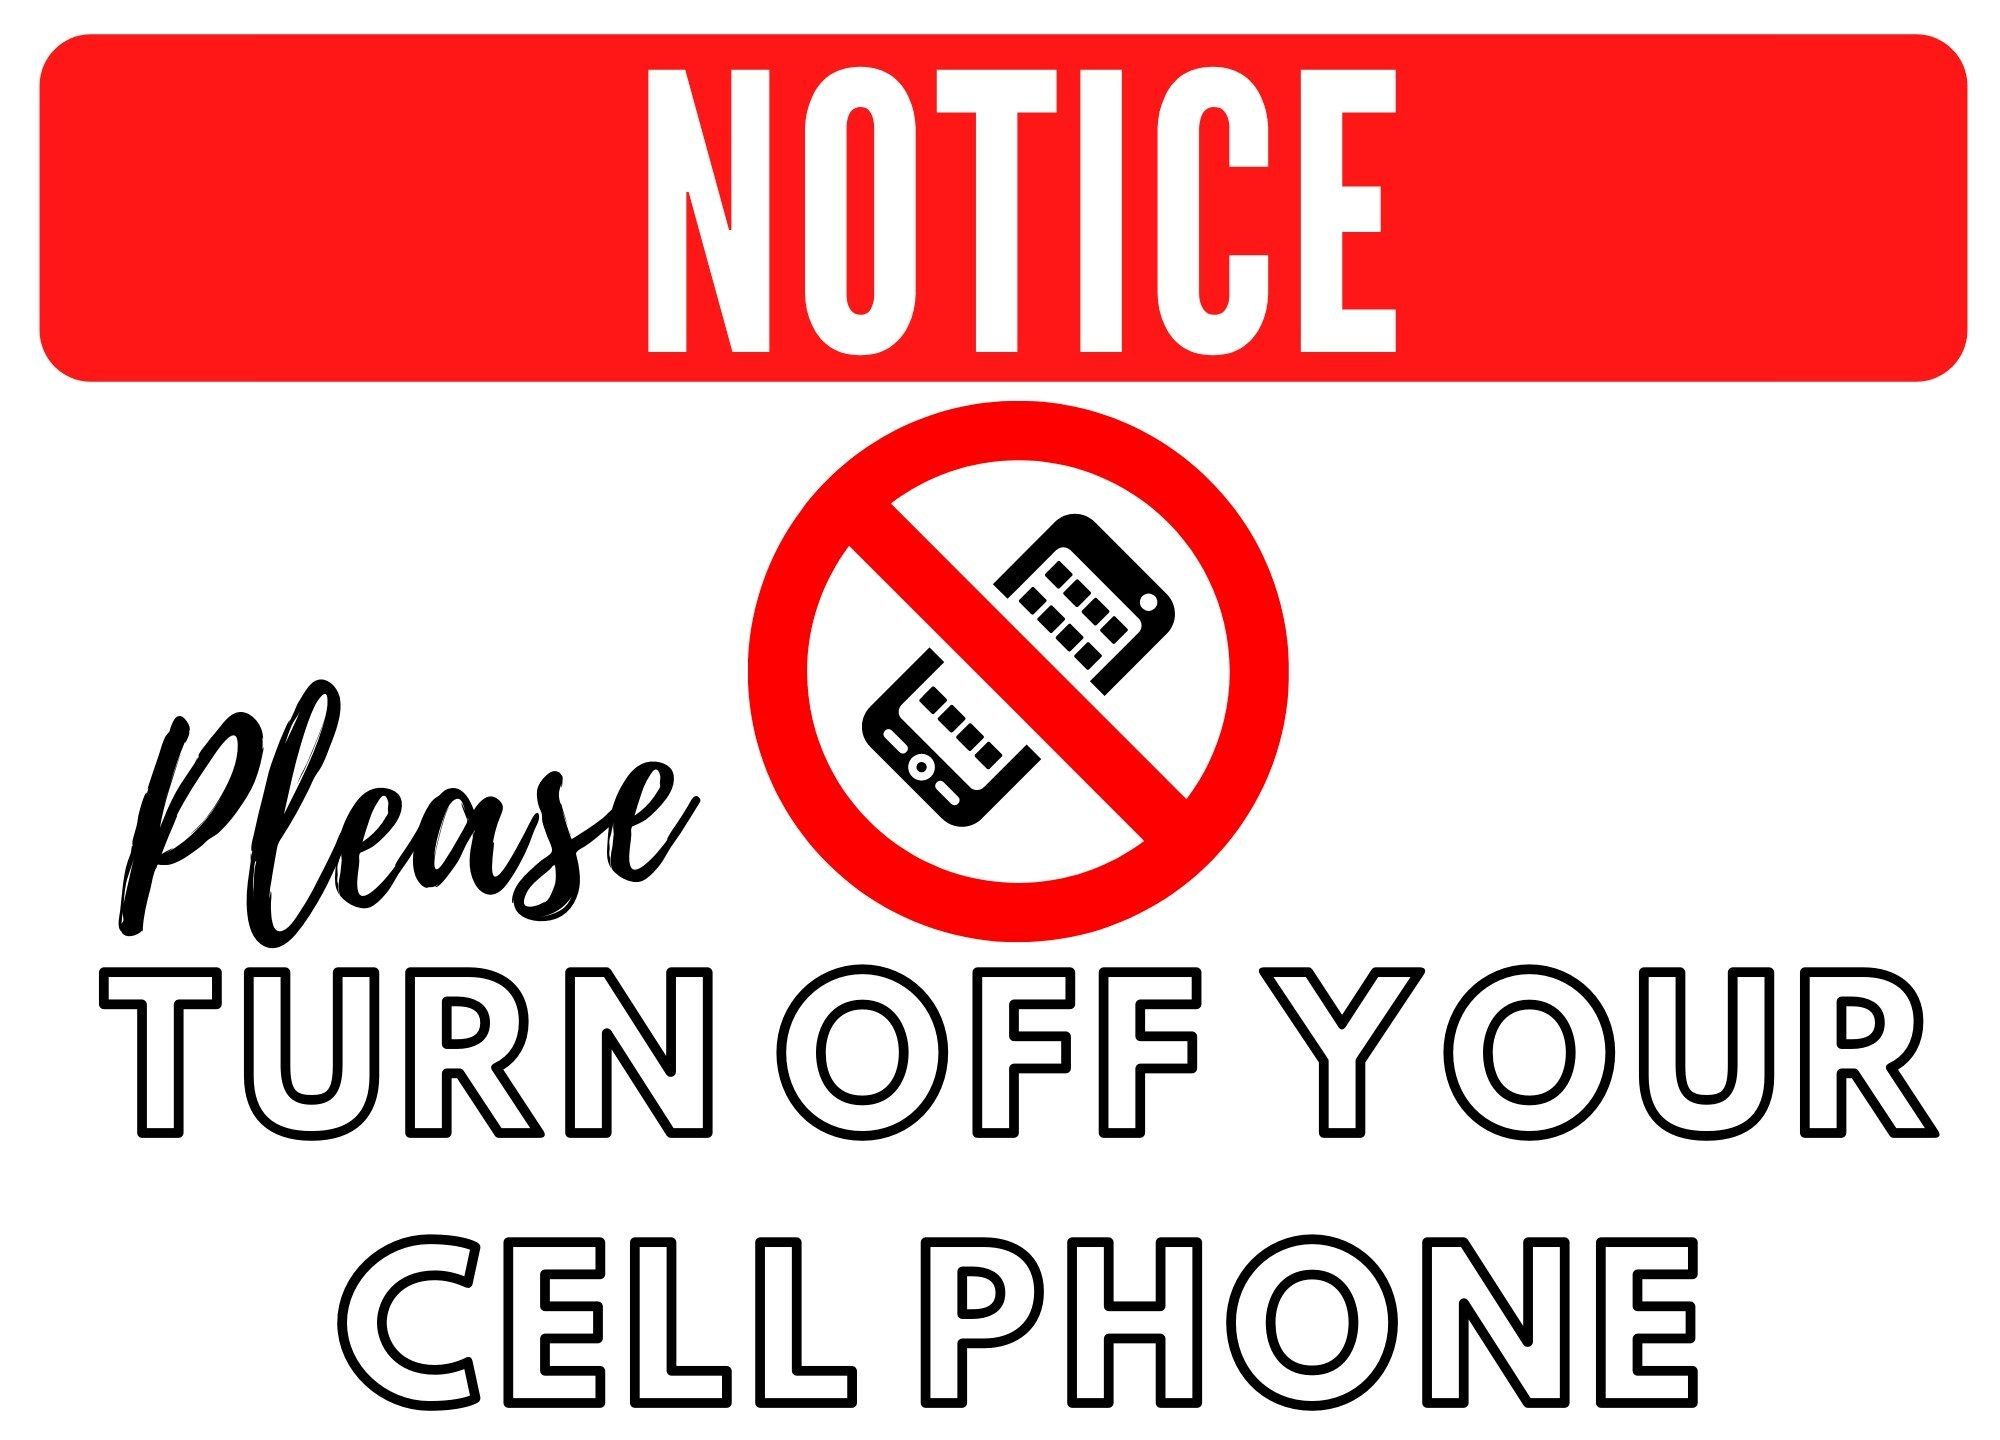 Free No Cell Phone Sign Printable Template Images No Cell Phone Sign Printable Signs Cell Phone Turn off cell phones sign